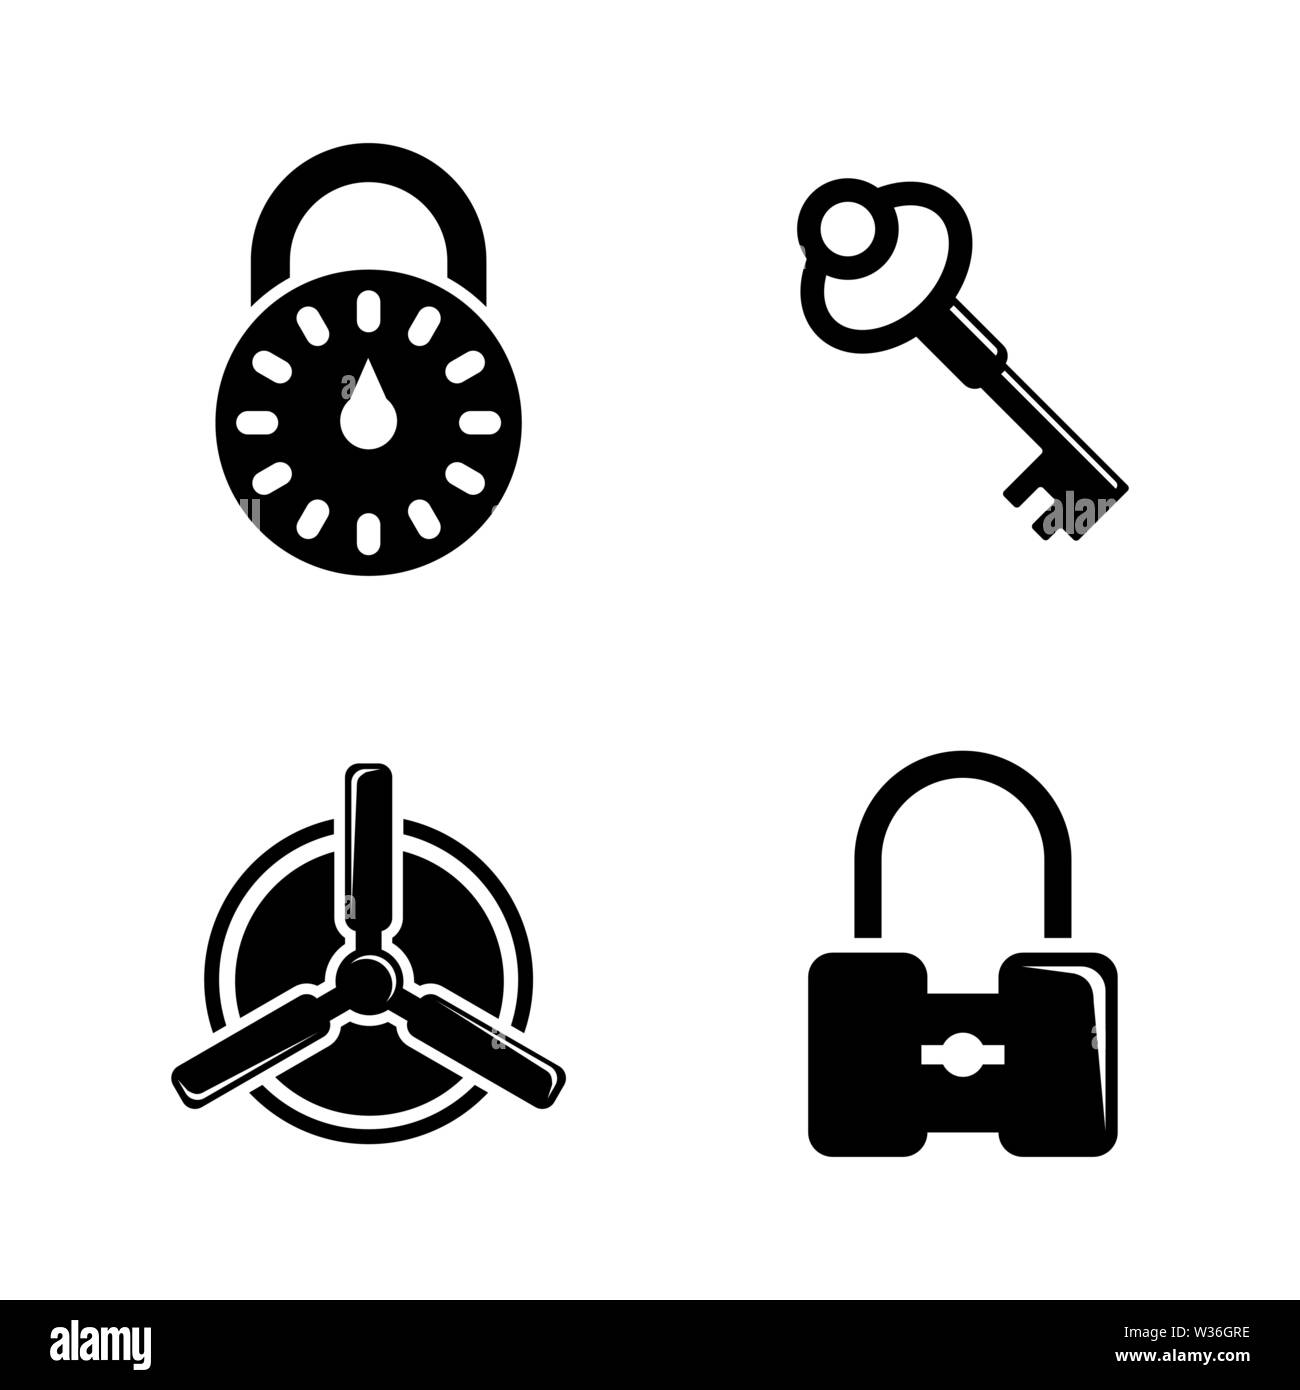 Keys and Lock. Simple Related Vector Icons Set for Video, Mobile Apps, Web Sites, Print Projects and Your Design. Black Flat Illustration on White Bac - Stock Image